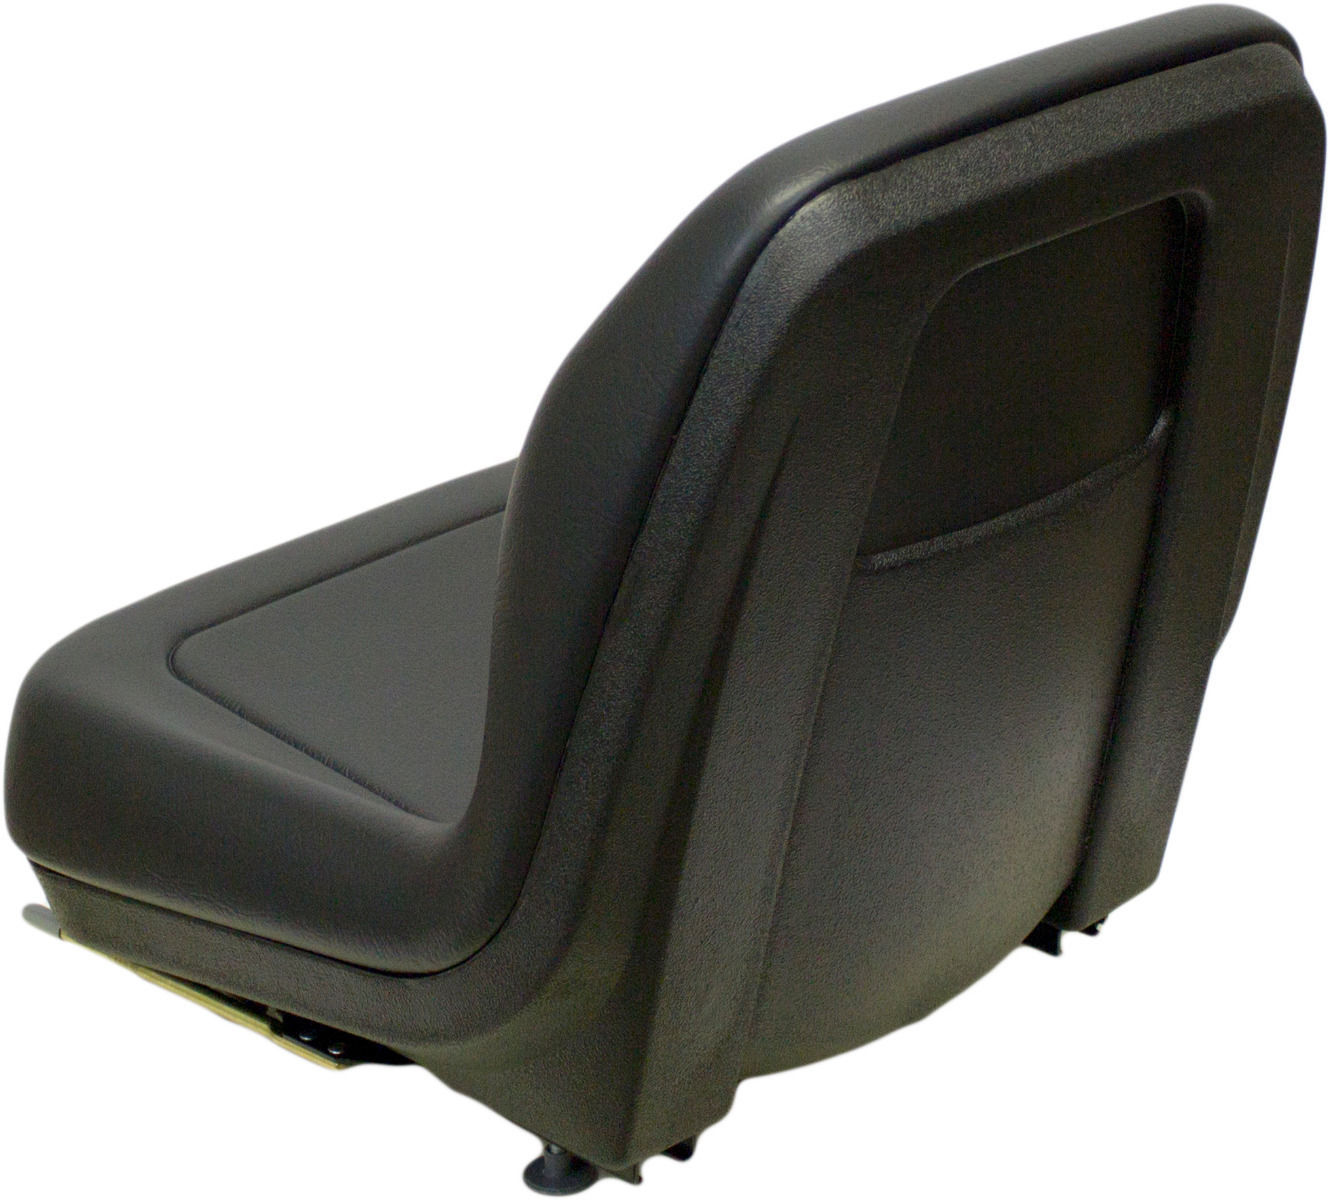 BLACK SEAT FORD NEW HOLLAND SKID STEER, COMES WITH TWO SEAT SWITCHES on